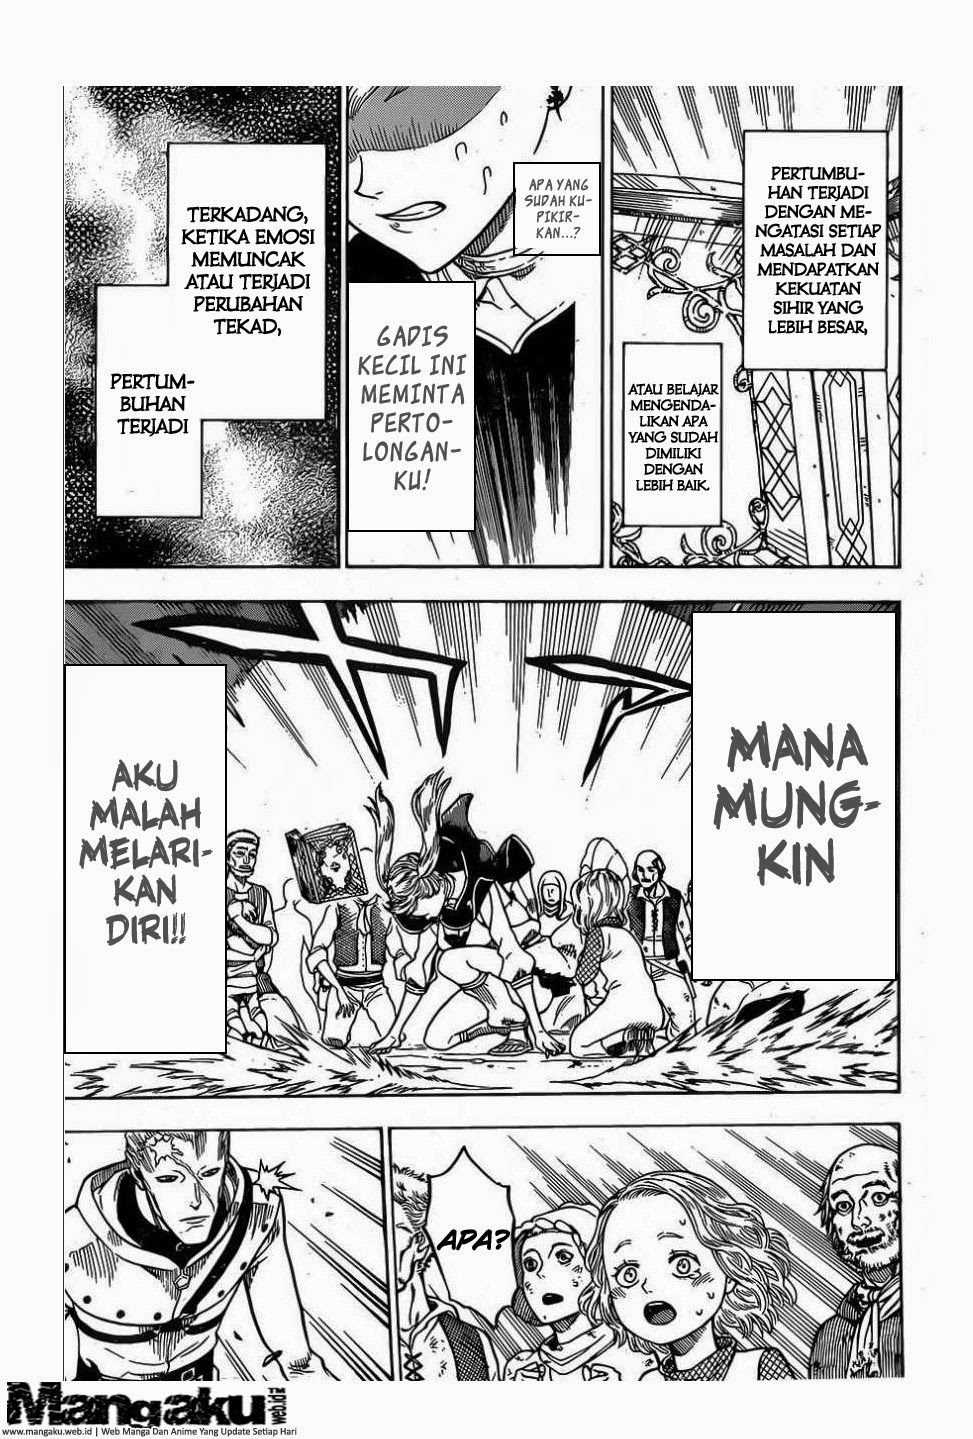 Manga Black Clover chapter 7 : Monster Bahasa Indonesia